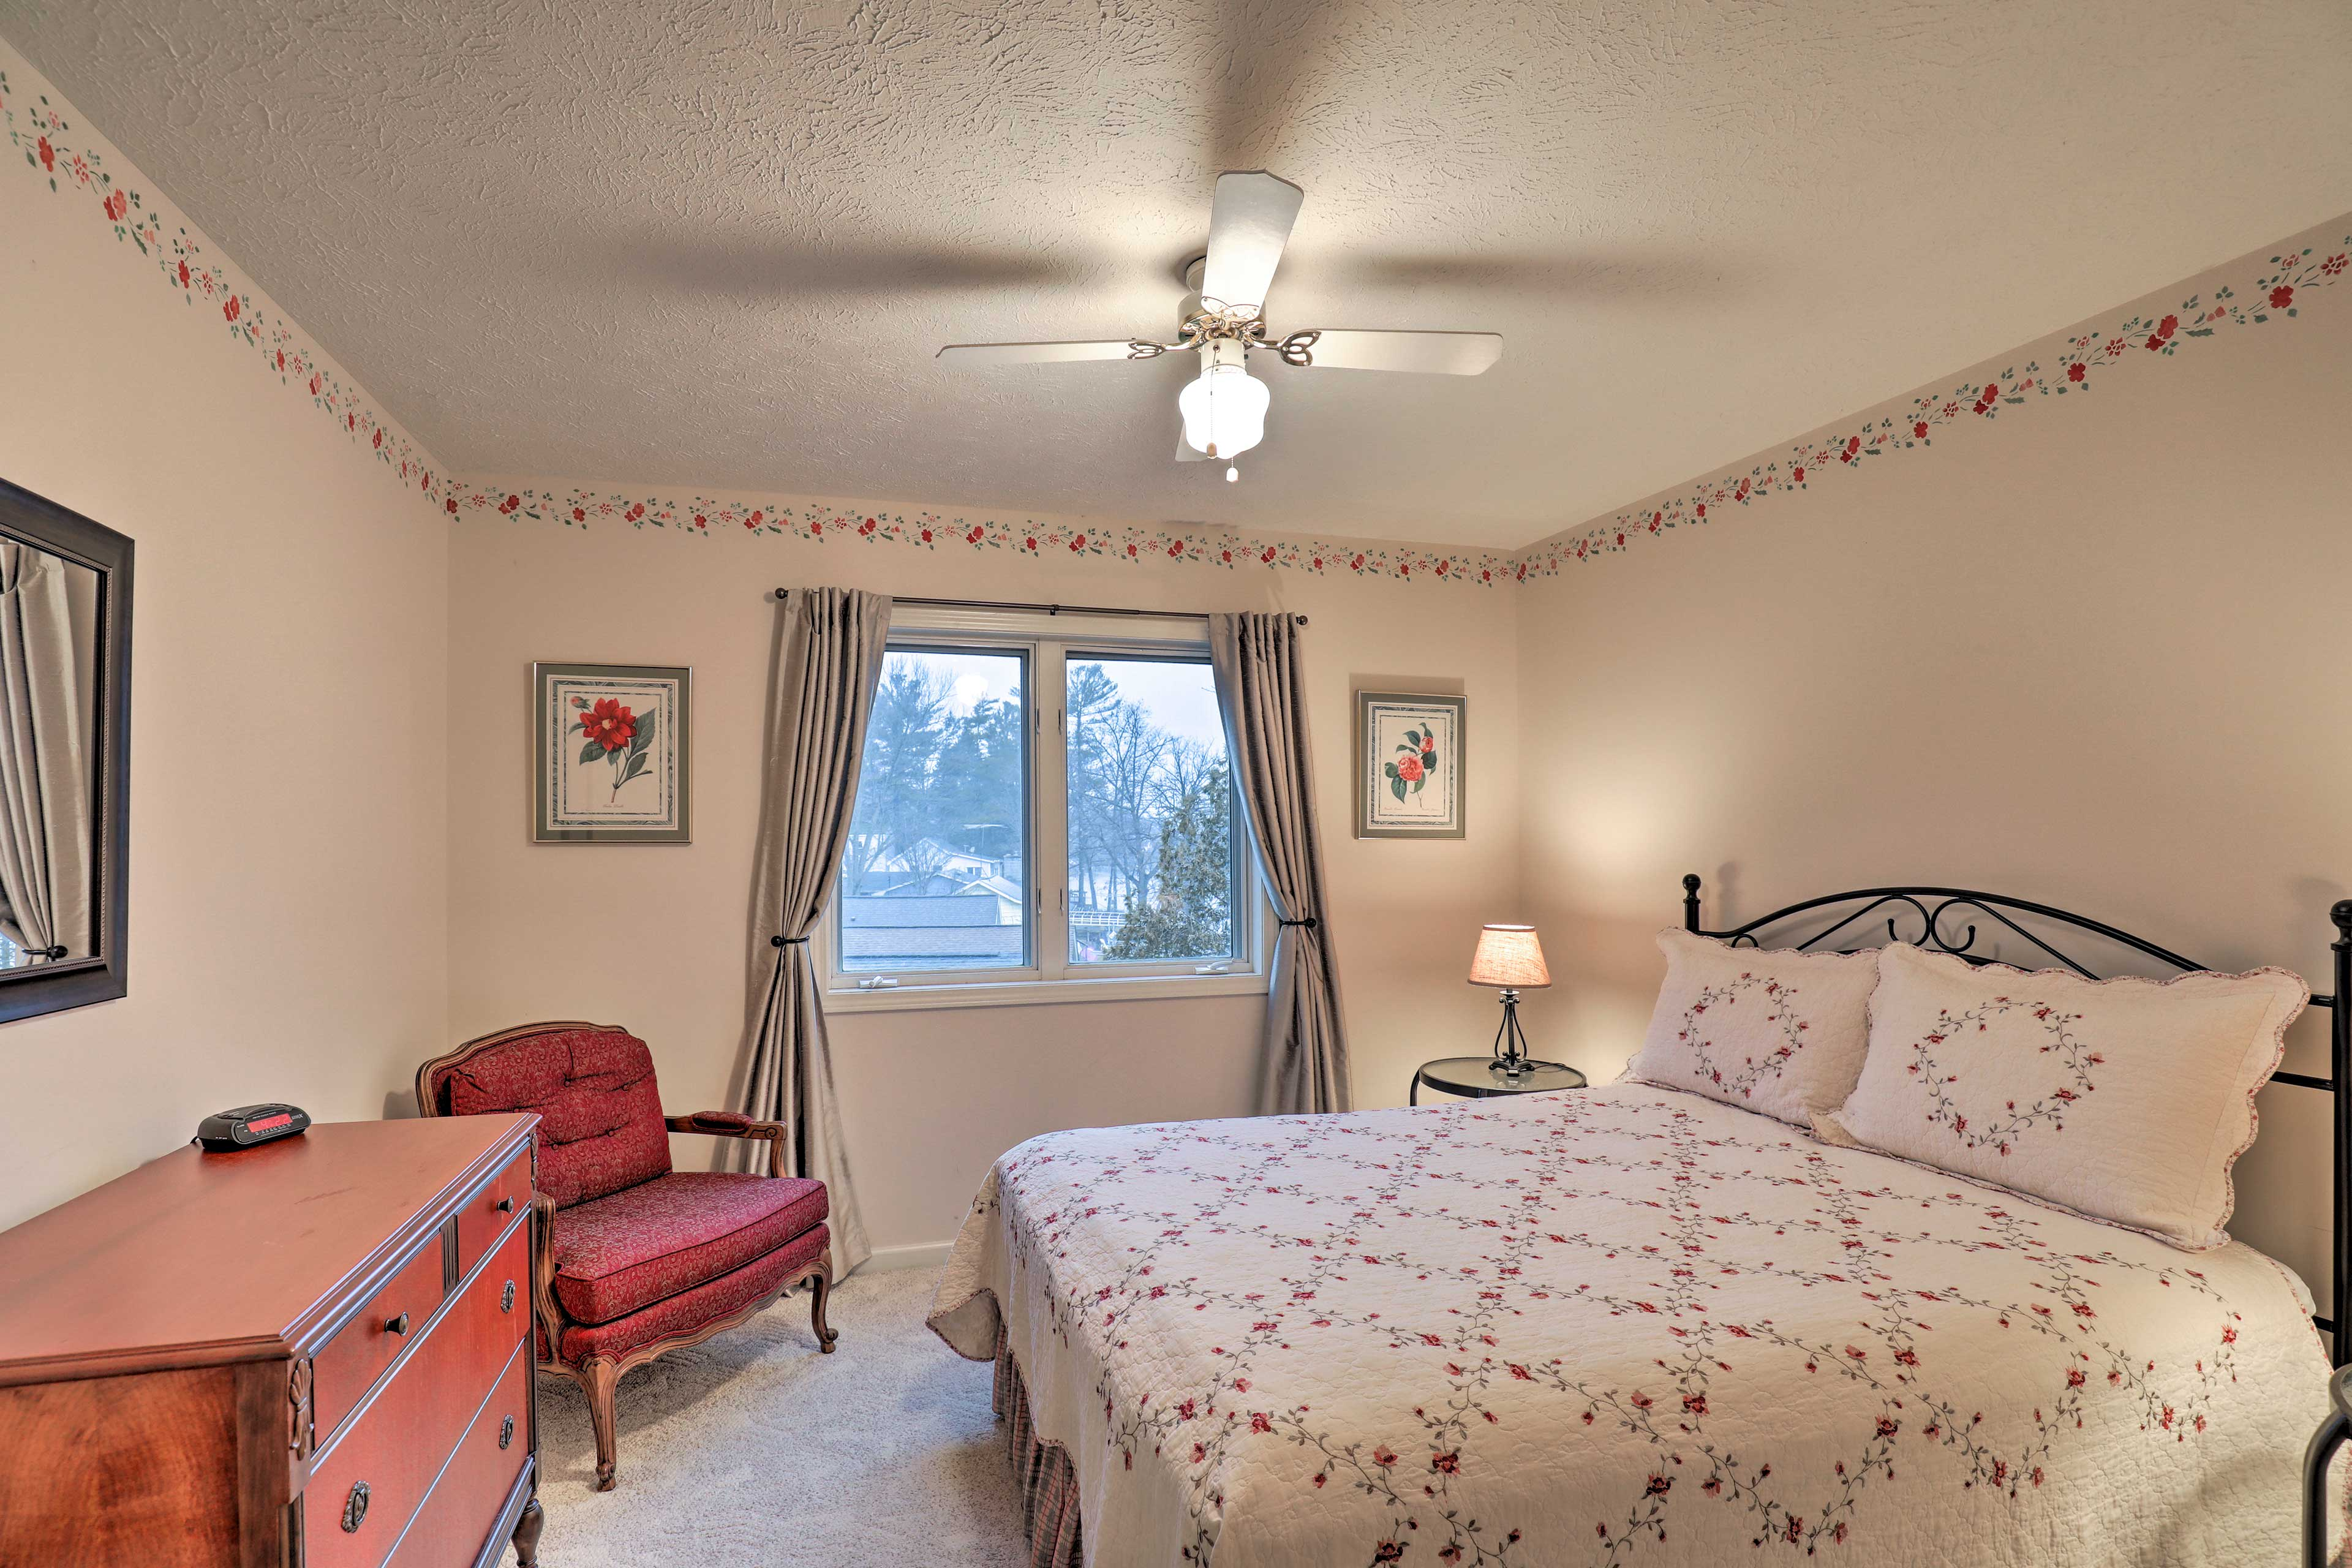 You'll get a great night of rest in this comfortable bedroom with floral decor.